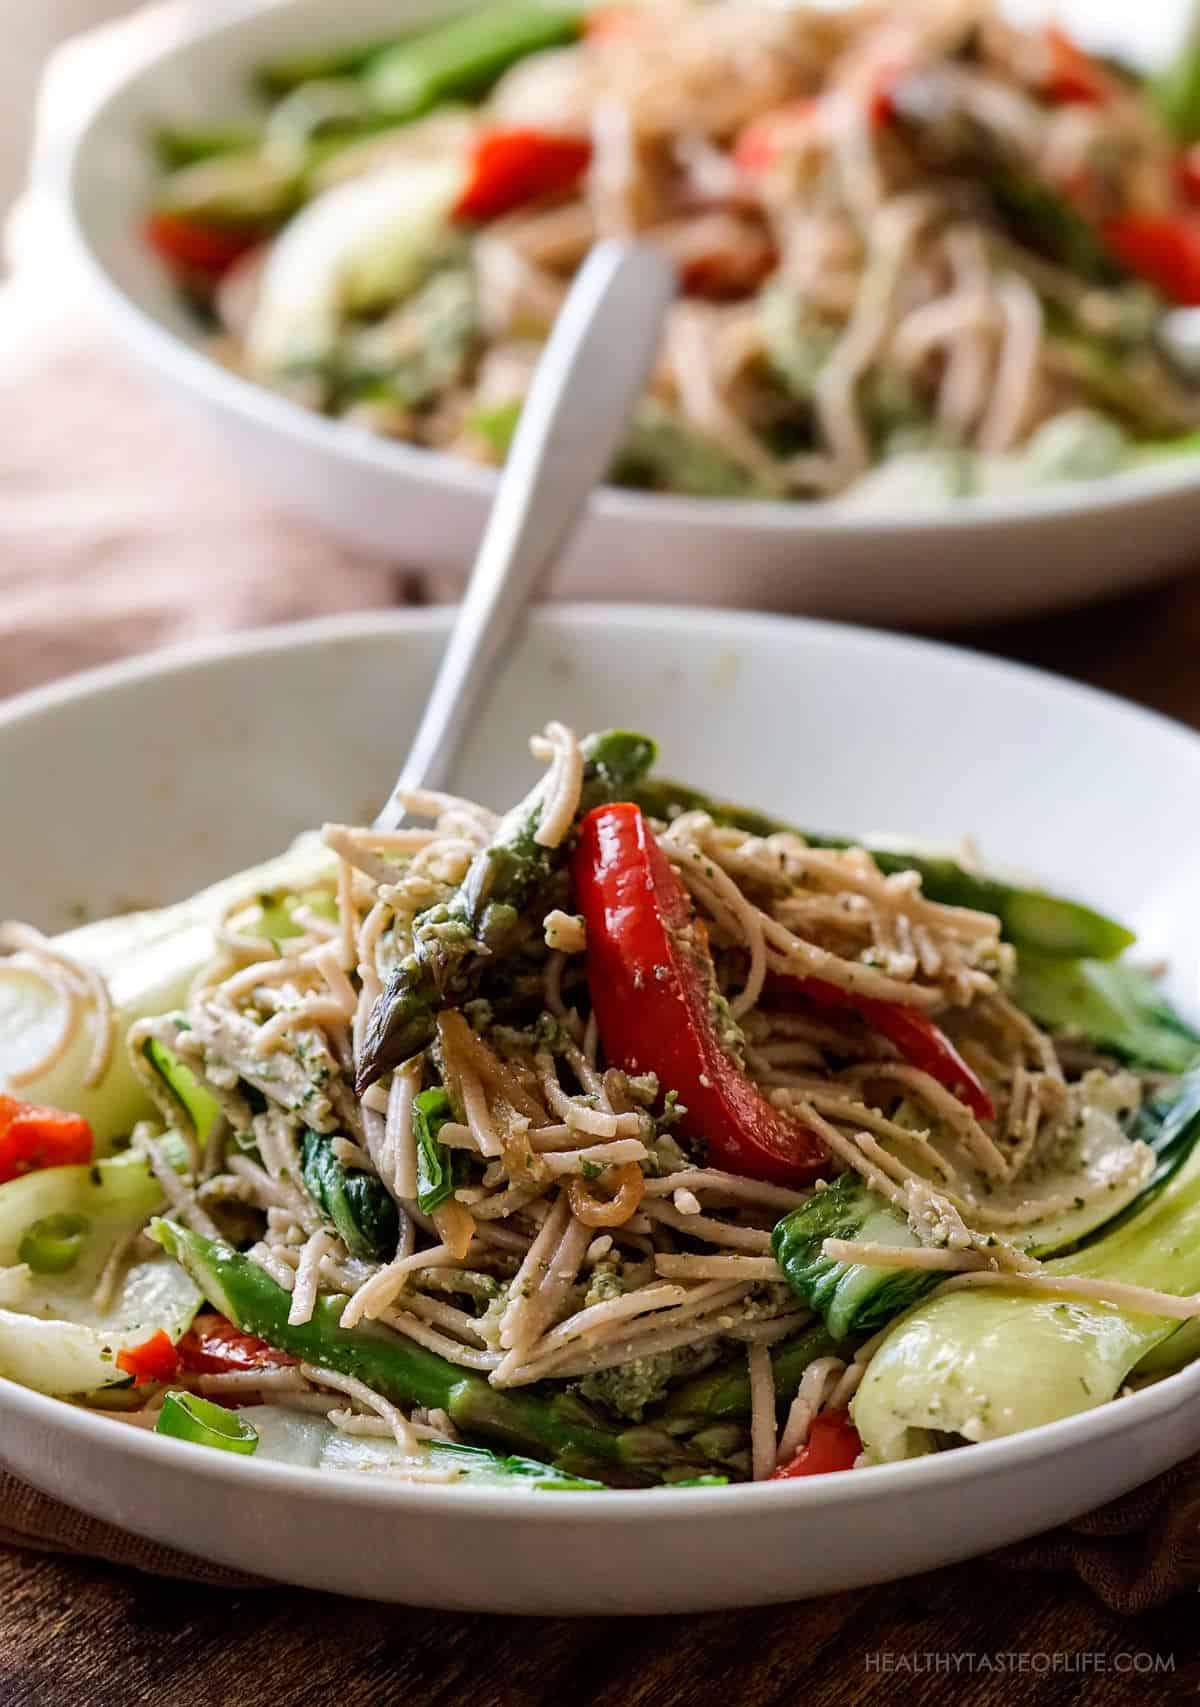 Recipe for buckwheat noodles with fried vegetables and basil pesto sauce with avocado.